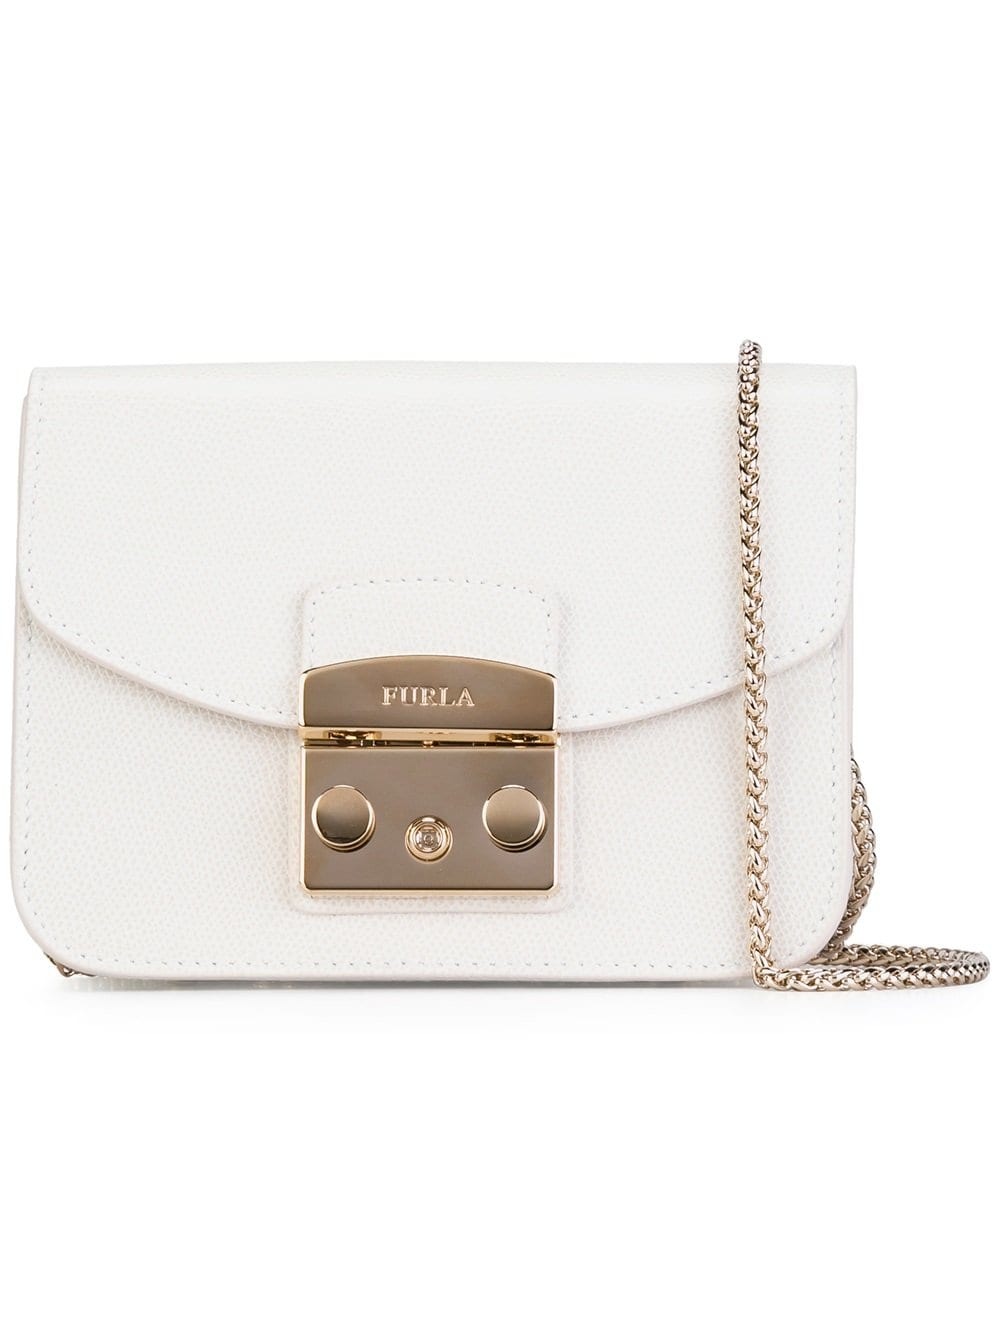 20c68869a Mimma Ninni – Luxury and Fashion Shopping. Furla Metropolis Mini Bag ...